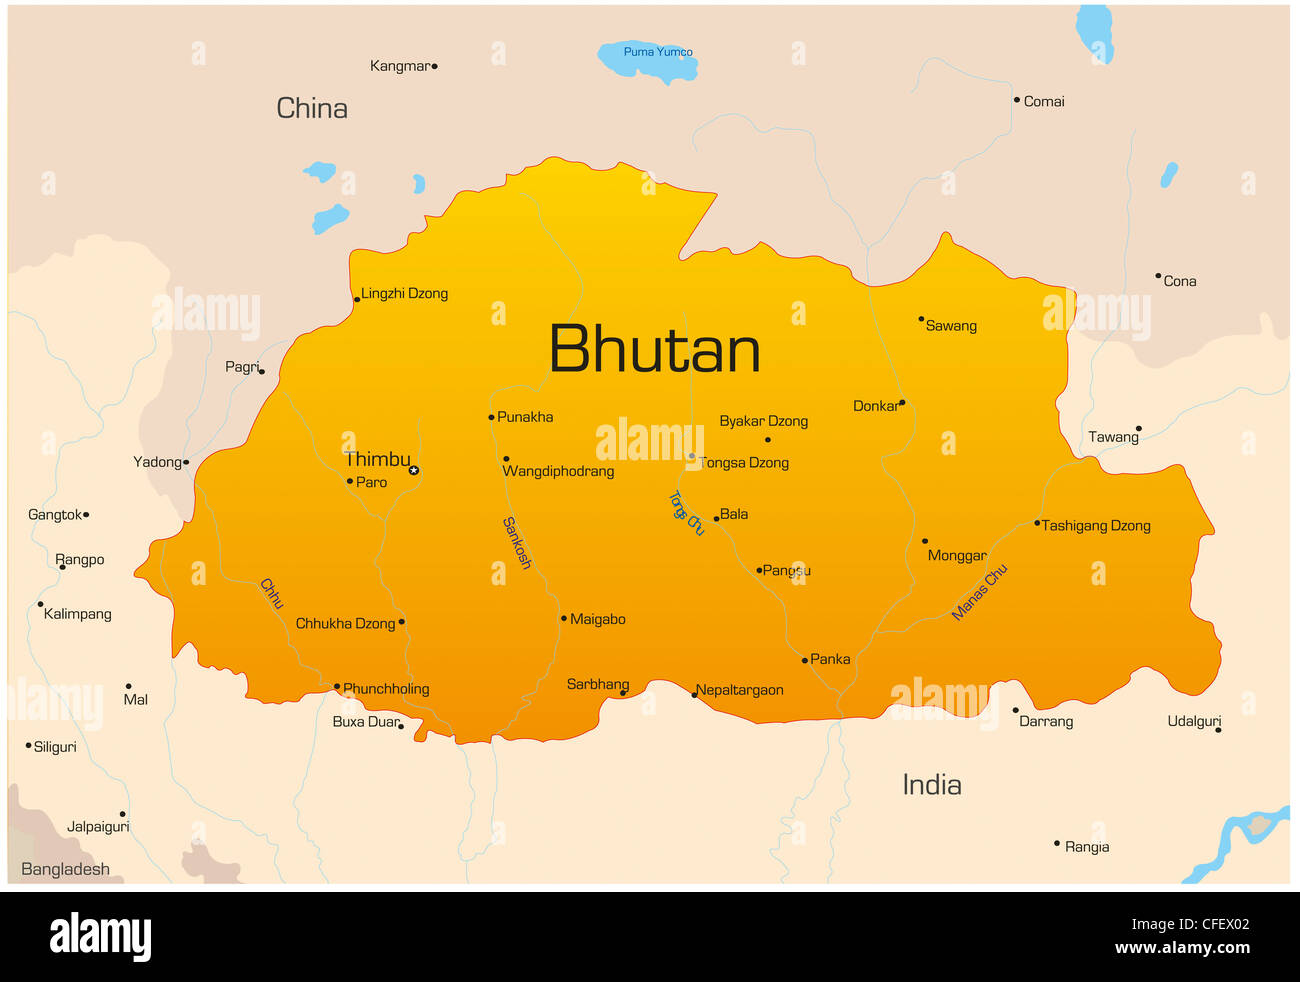 Vector map of Bhutan country Stock Photo: 43968290 - Alamy on map of chile, united states of america, map of india, map of peru, map of sri lanka, map of japan, map of nepal, map of myanmar, map of k2, jetsun pema, map of china, map of middle east, map of iraq, map of singapore, map of tibet, south asia, sri lanka, map of brunei, map of philippines, map of liechtenstein, map of bangladesh, map of turkey, map of himalayas, map of asia,